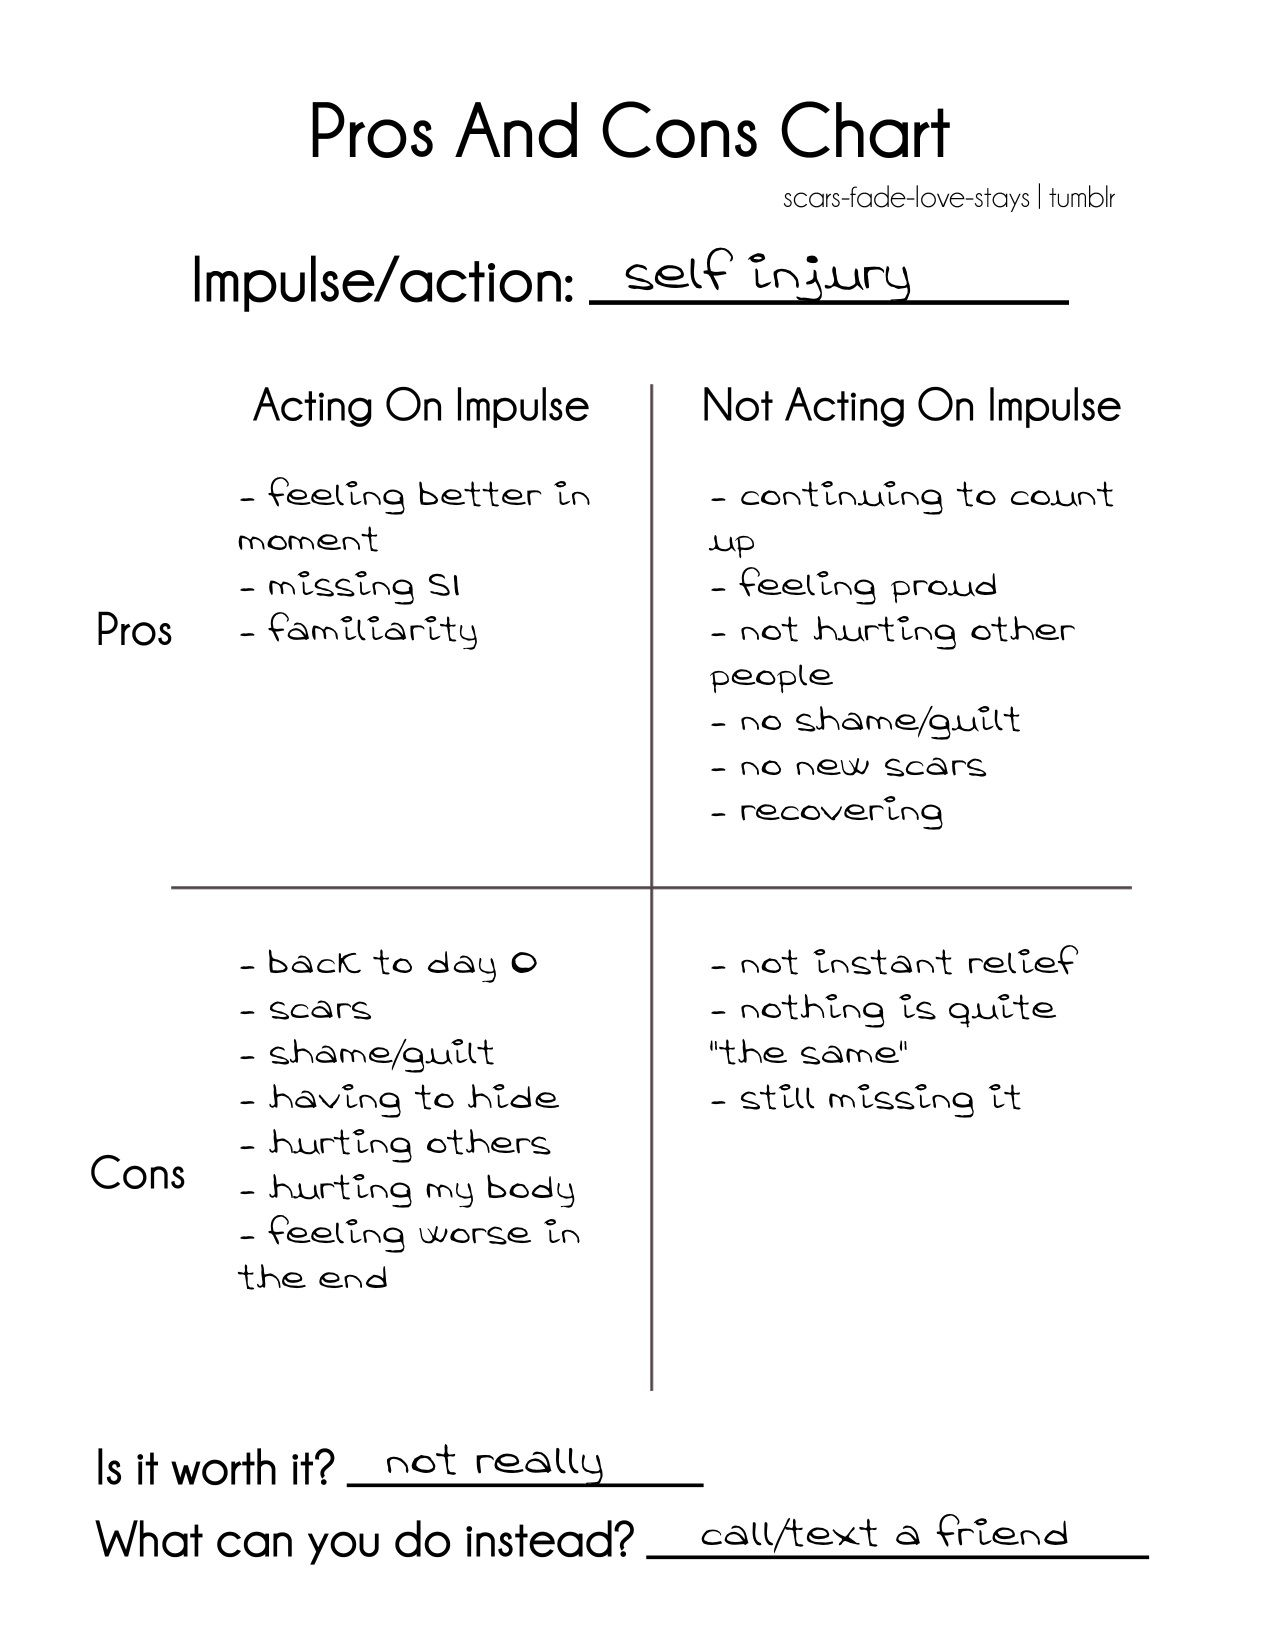 Creative Clinical Social Worker Pro S And Con S Chart Dbt Sheet